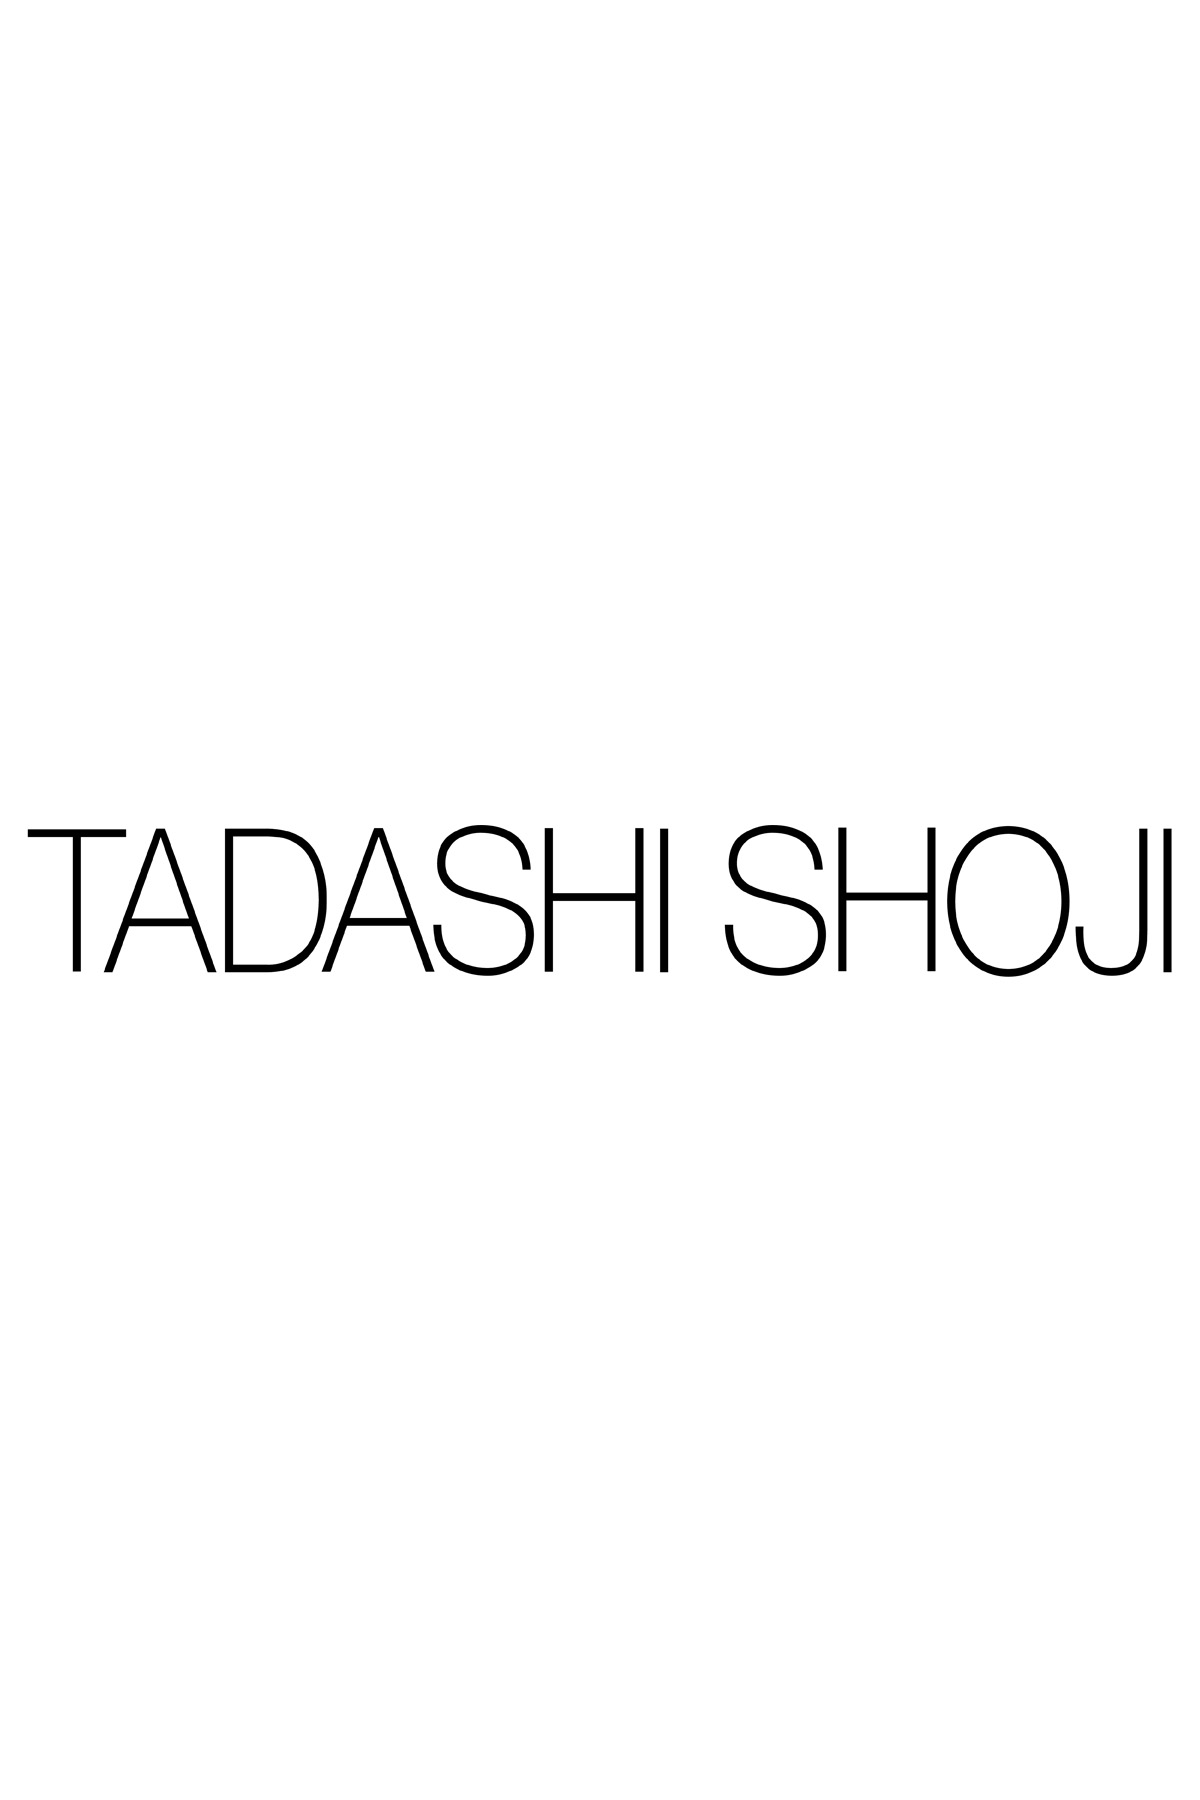 Tadashi Shoji - Corded Embroidery on Tulle Oval Clutch